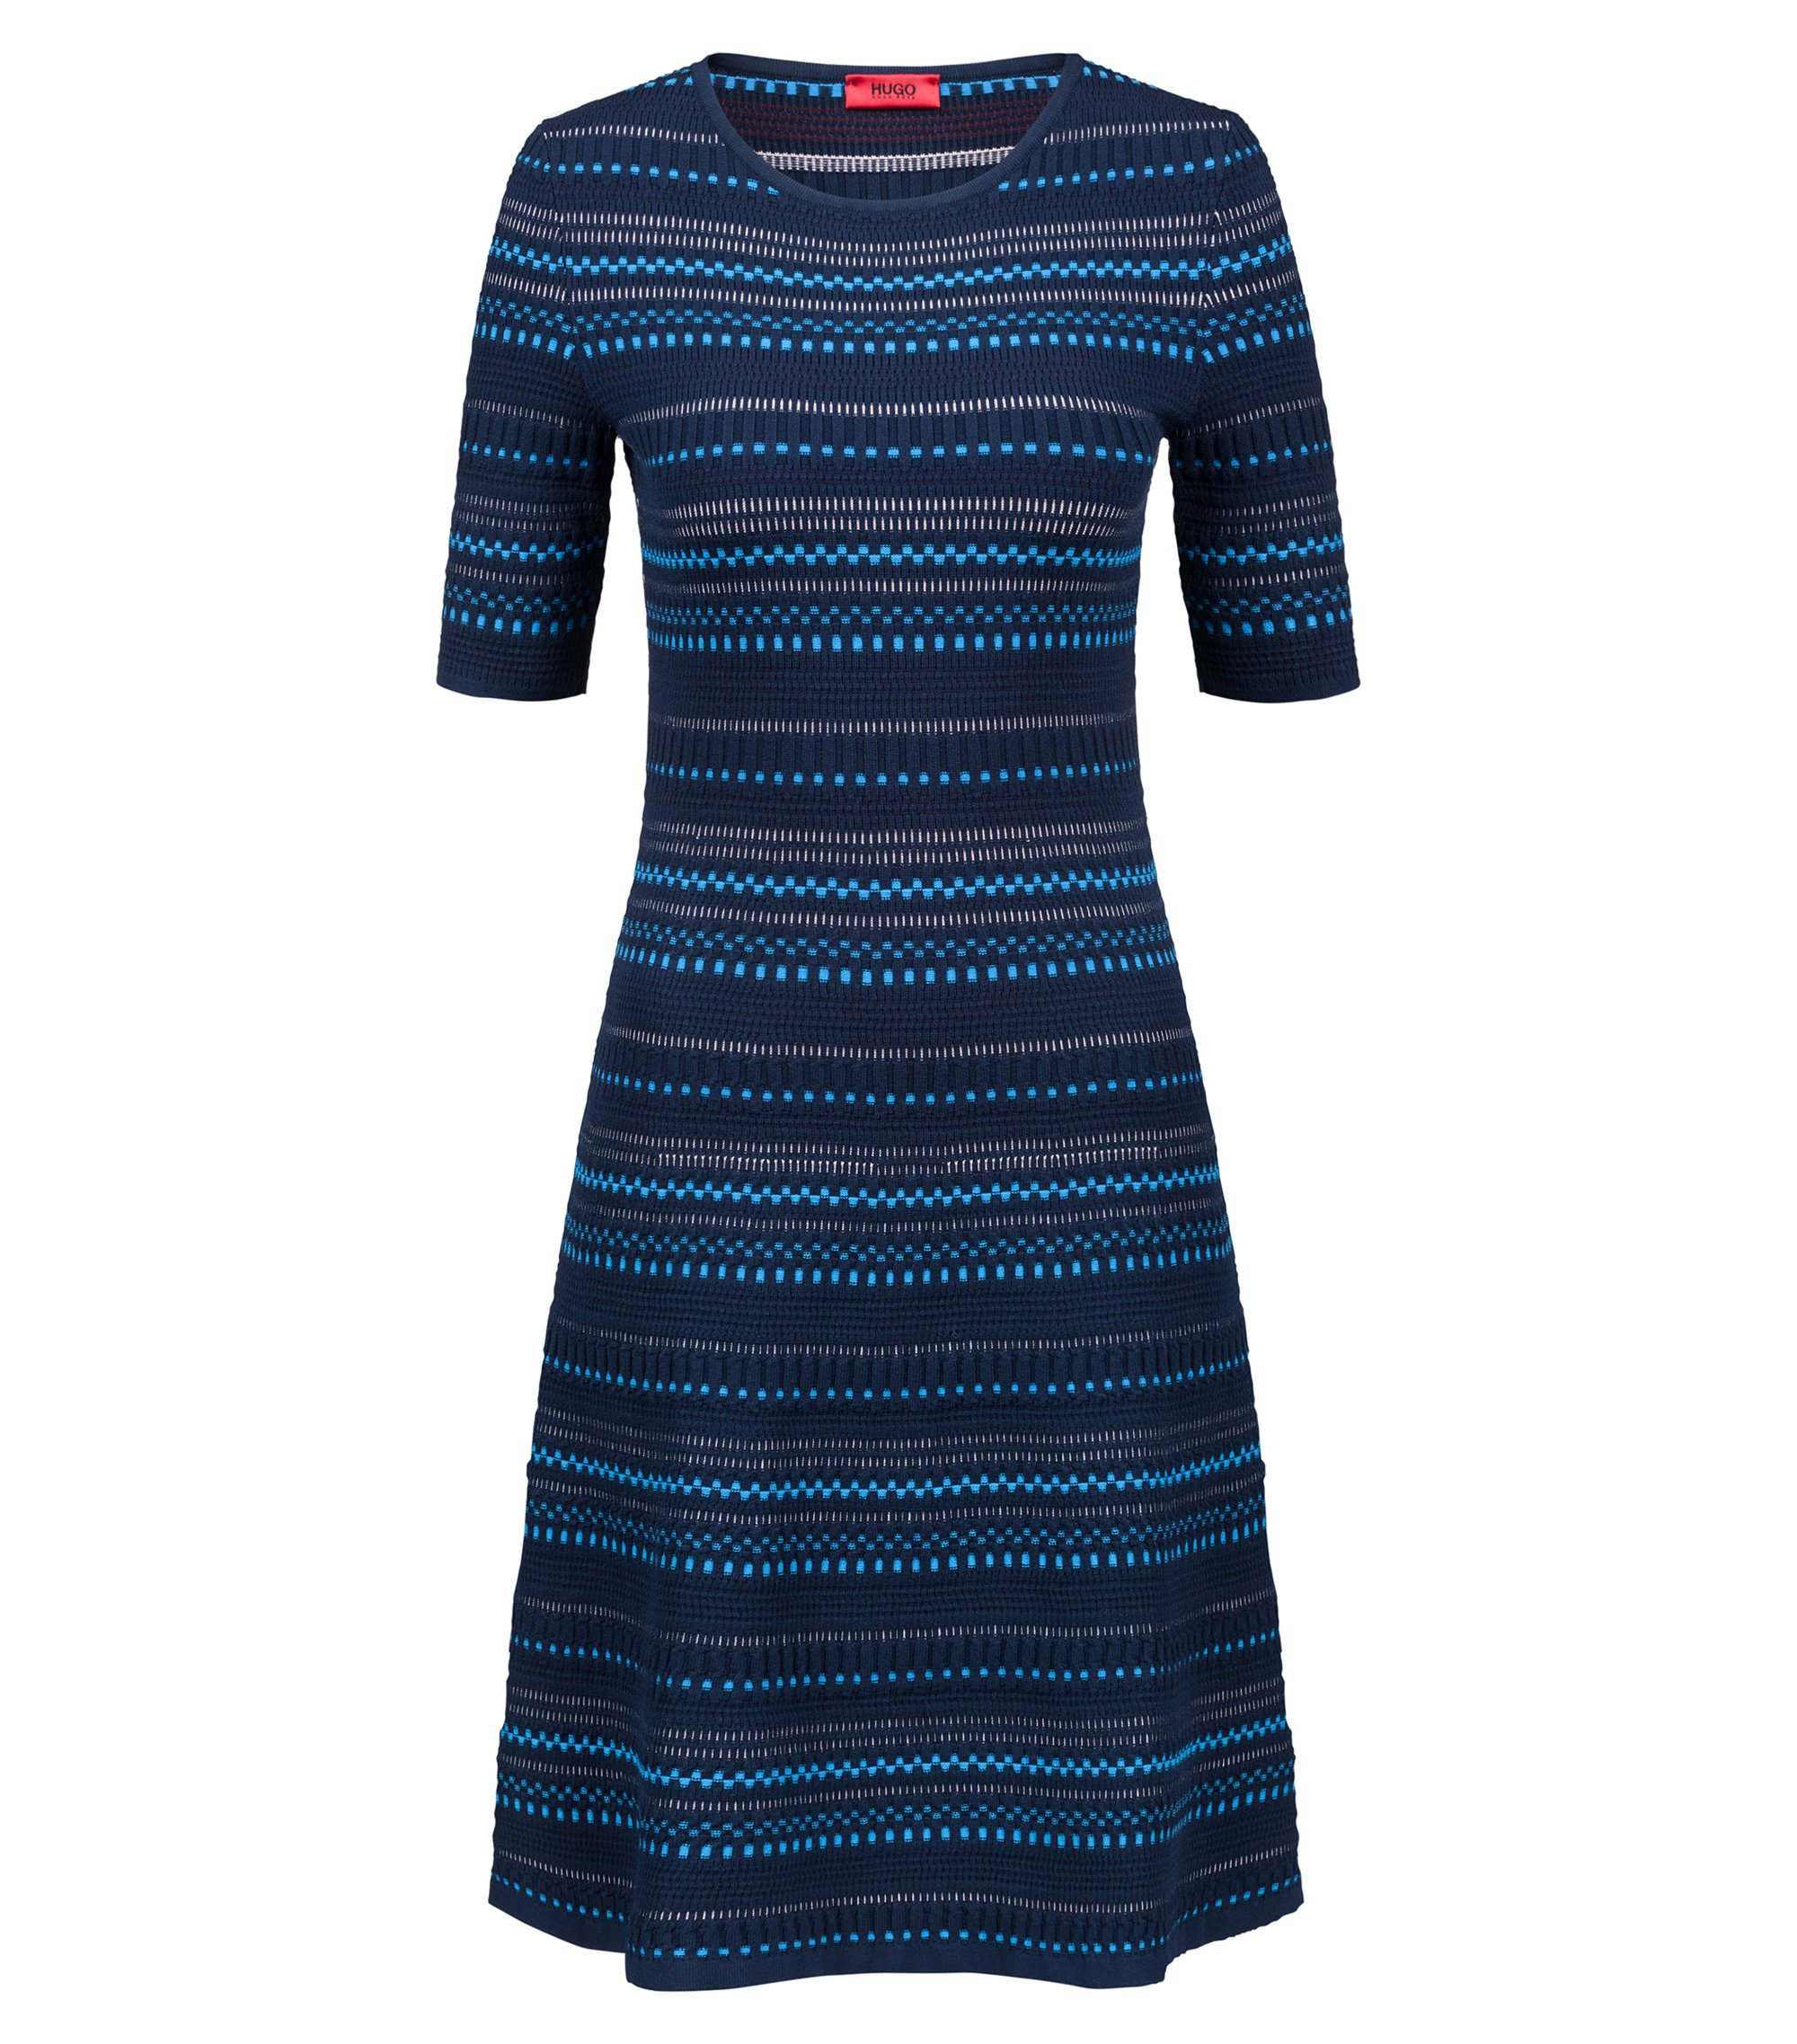 Robe en maille jacquard ultra stretch tricolore, Fantaisie